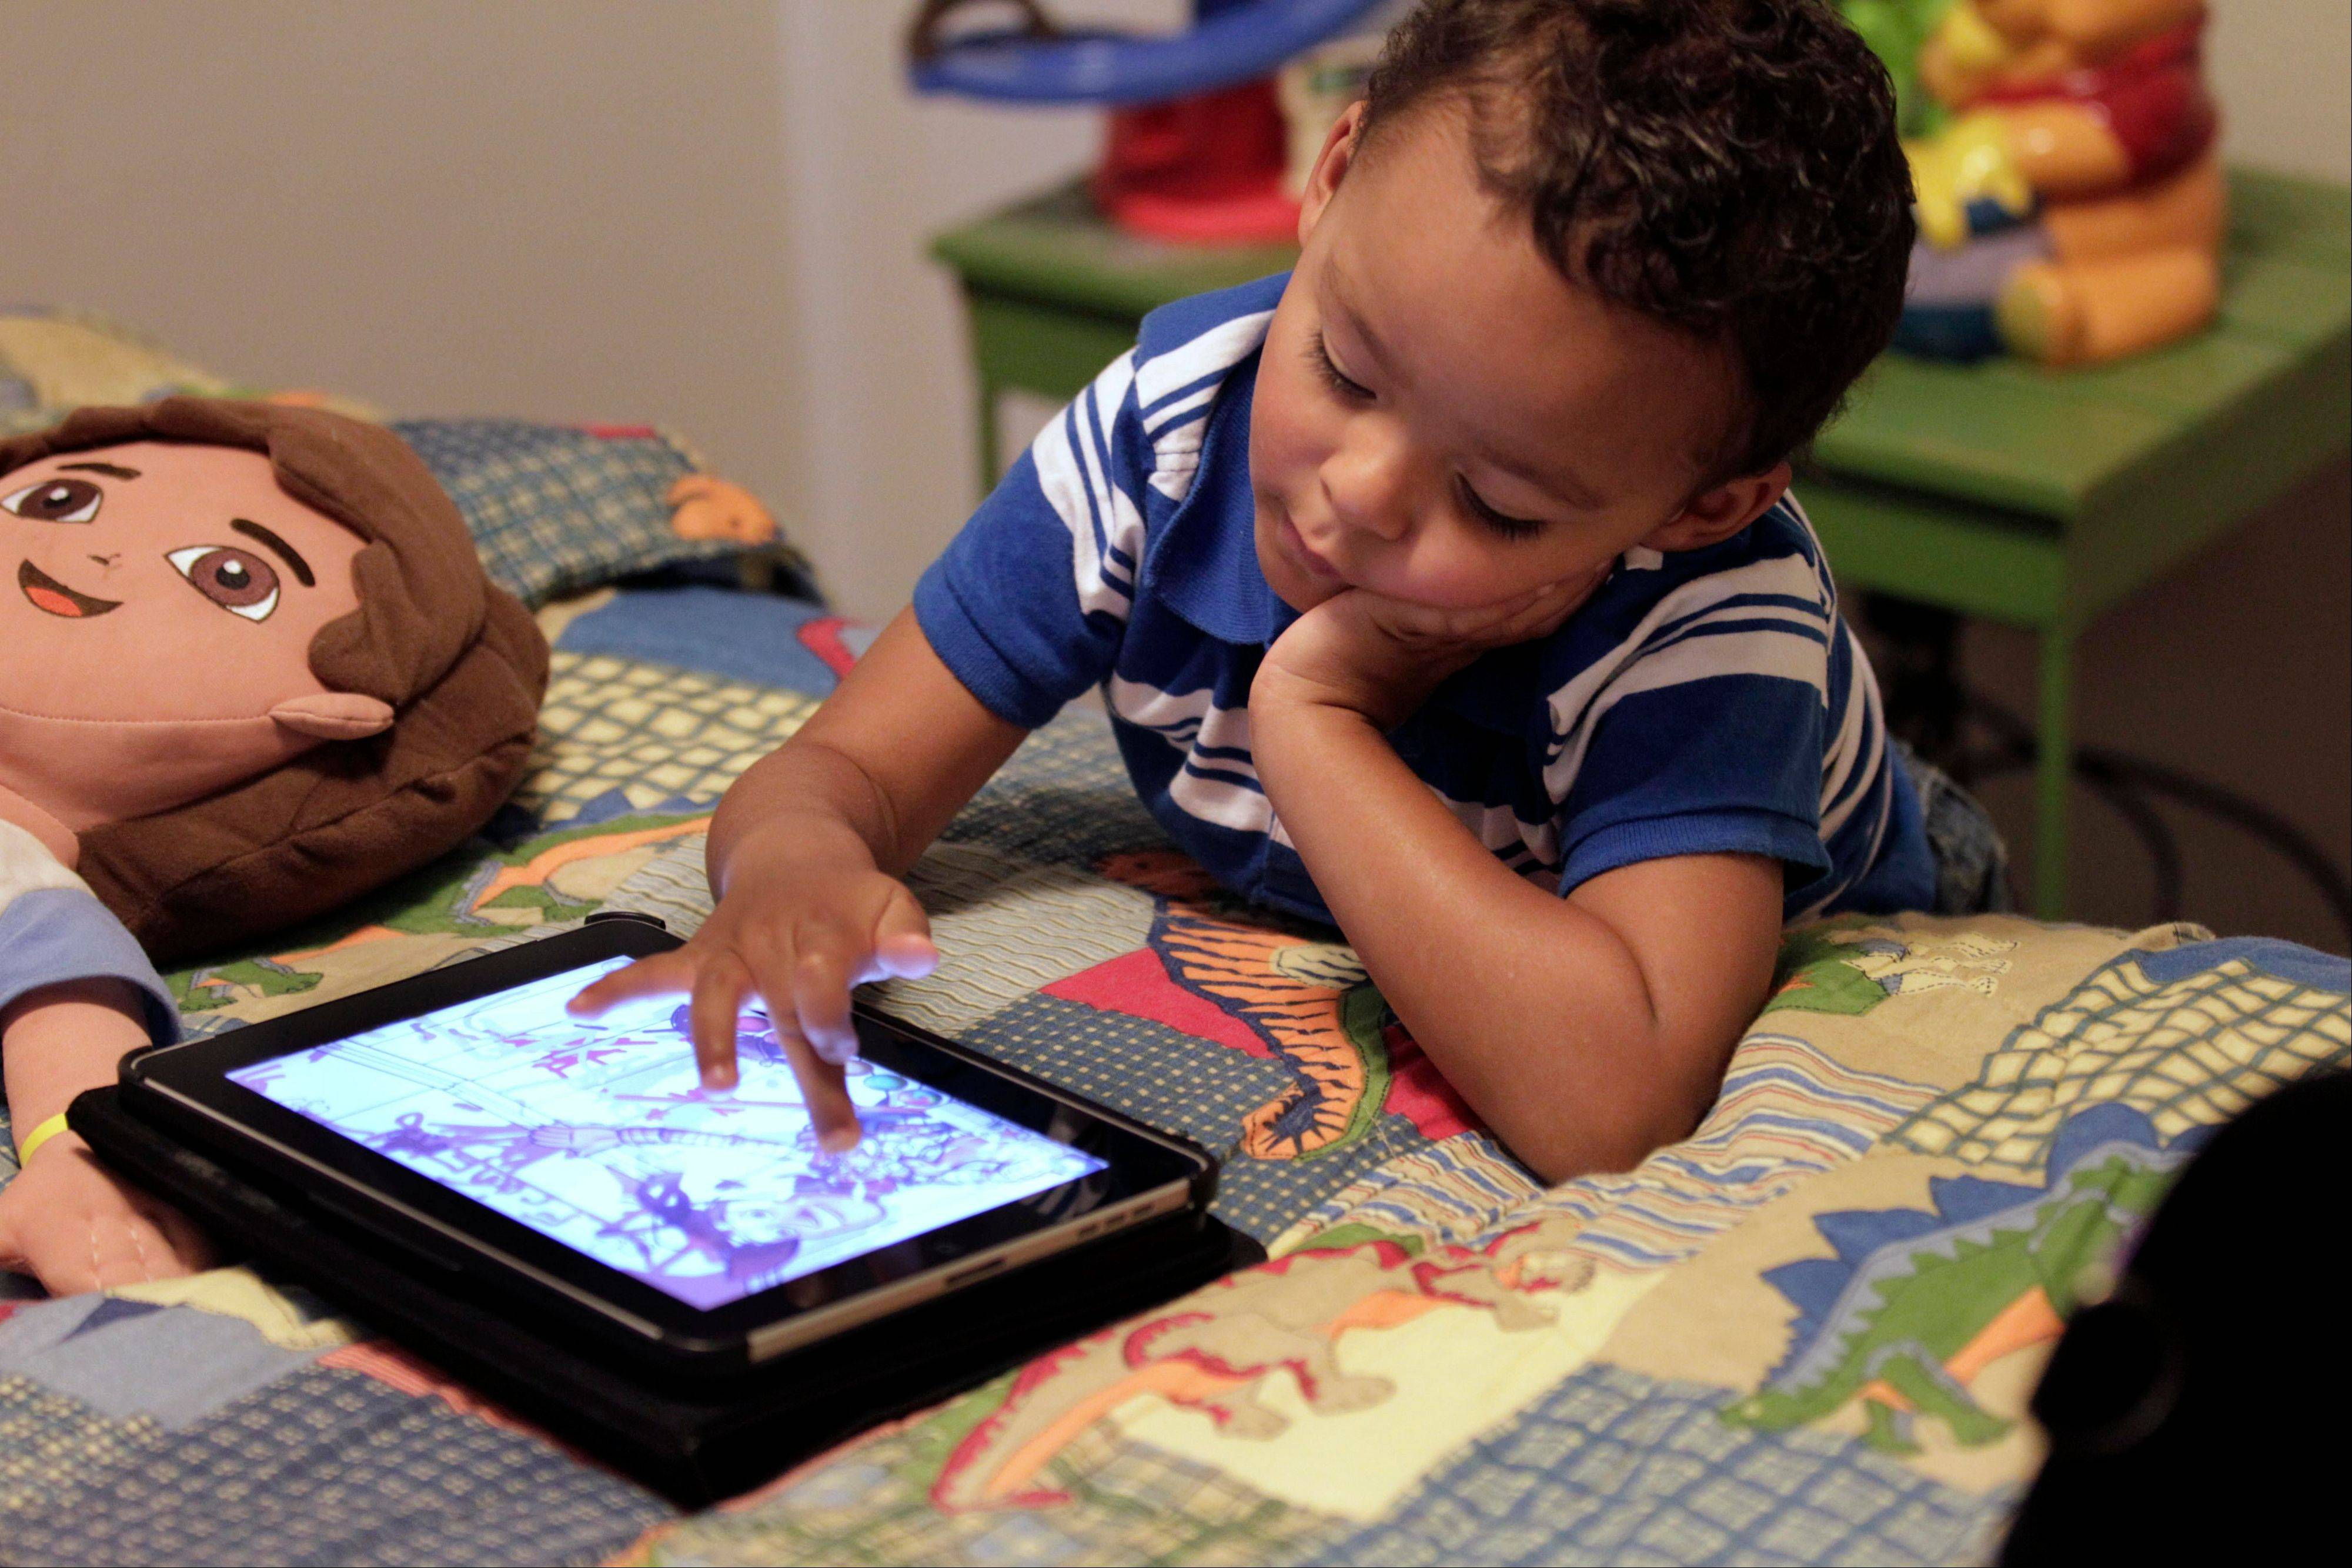 Frankie Thevenot, 3, plays with an iPad in his bedroom at his home in Metairie, La. The Campaign for a Commercial-Free Childhood, a Boston-based group, is urging federal investigators to examine the marketing practices of Fisher-Price�s and Open Solution�s mobile apps.